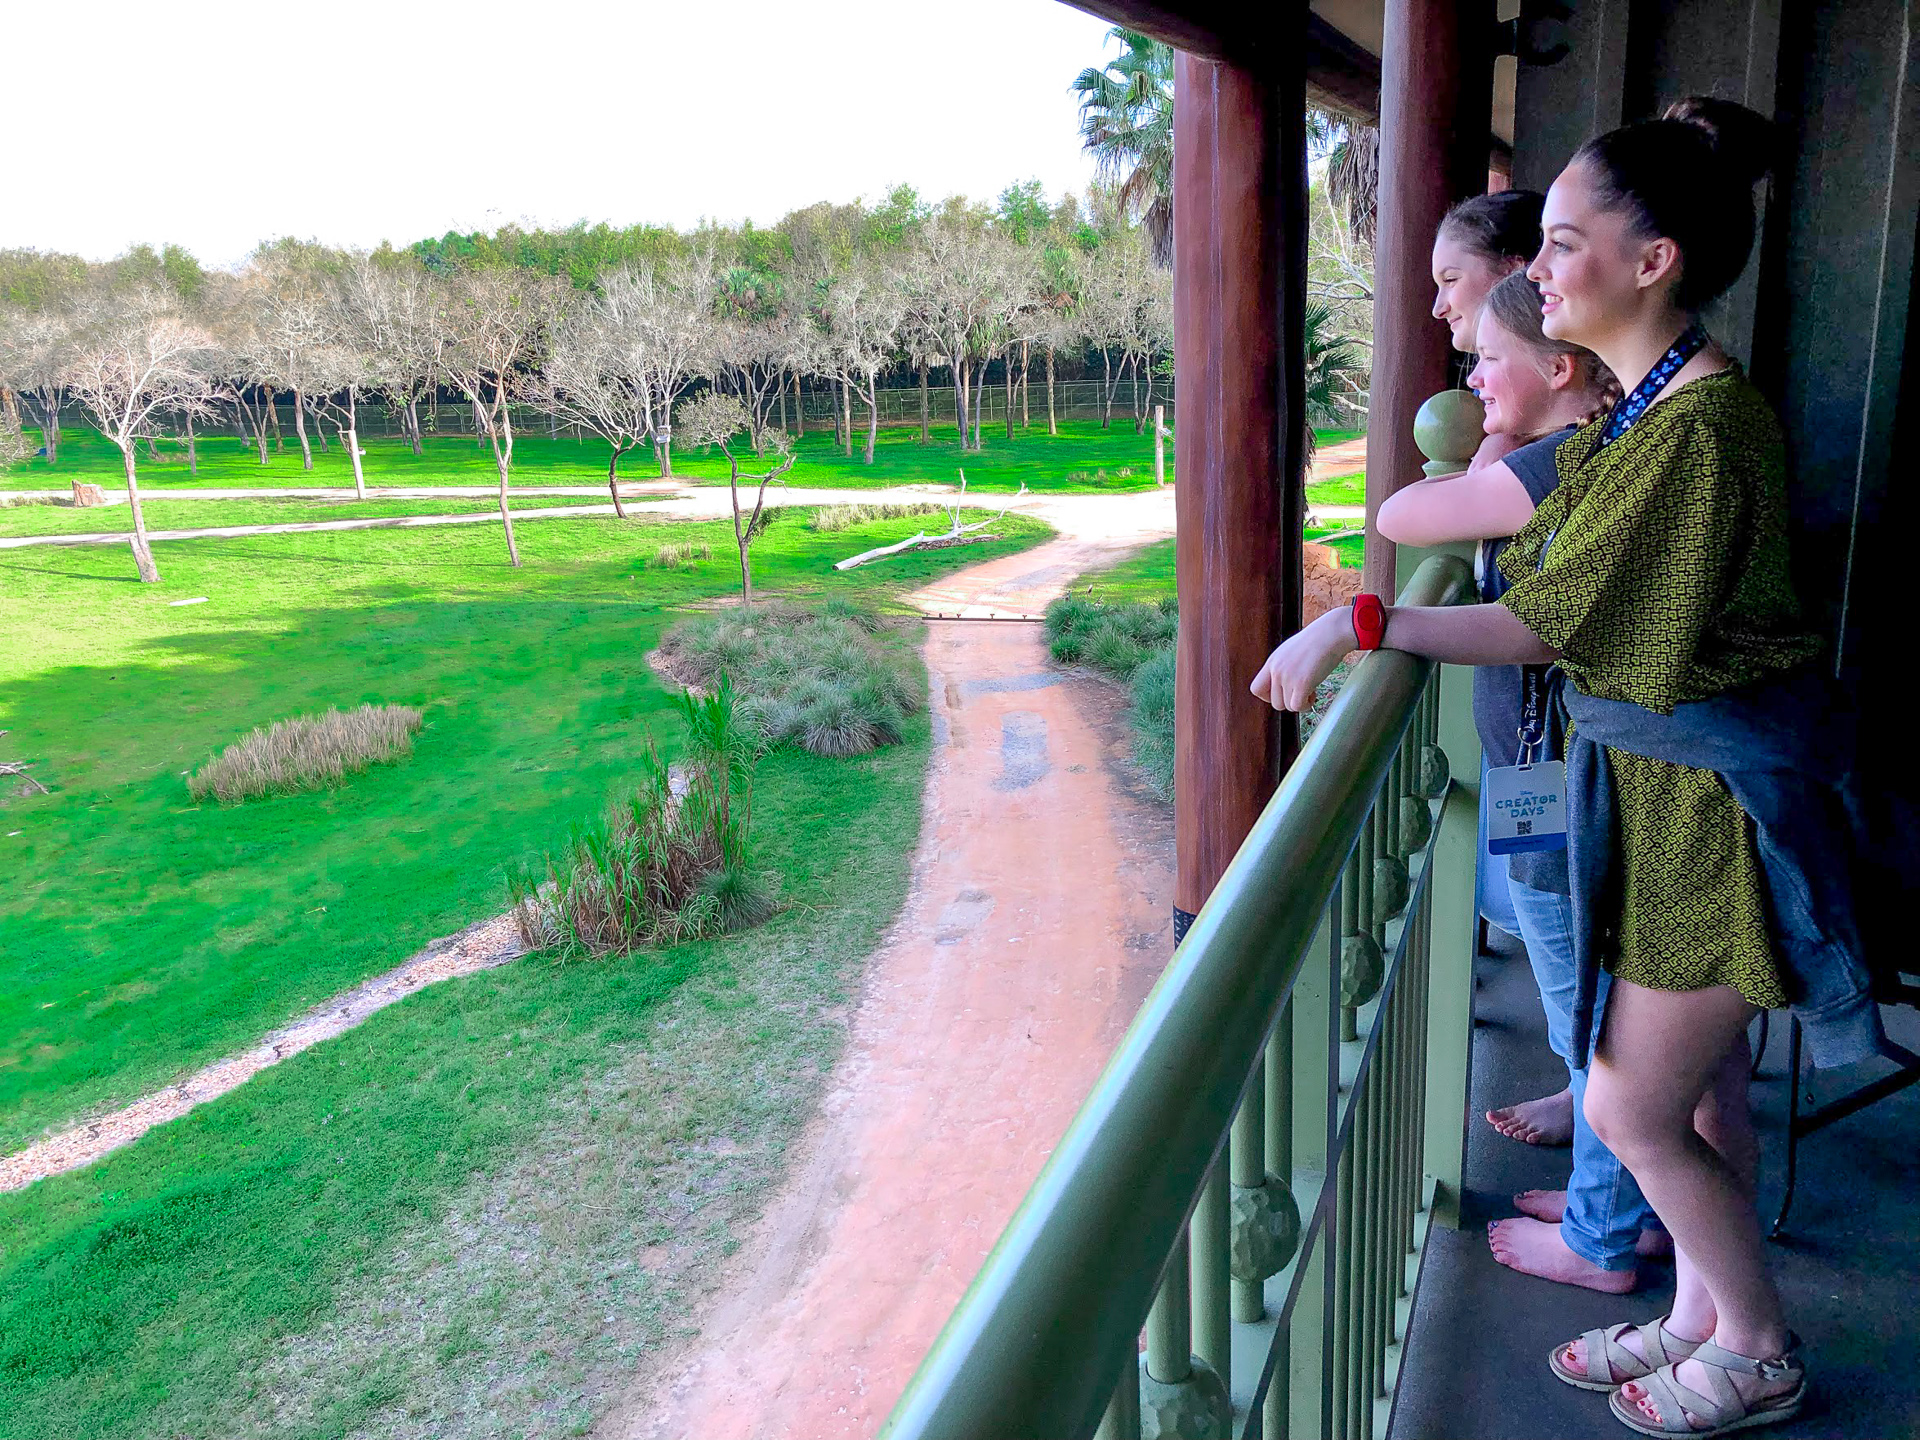 Three girls standing on the balcony of a room at the Animal Kingdom Lodge at Walt Disney World